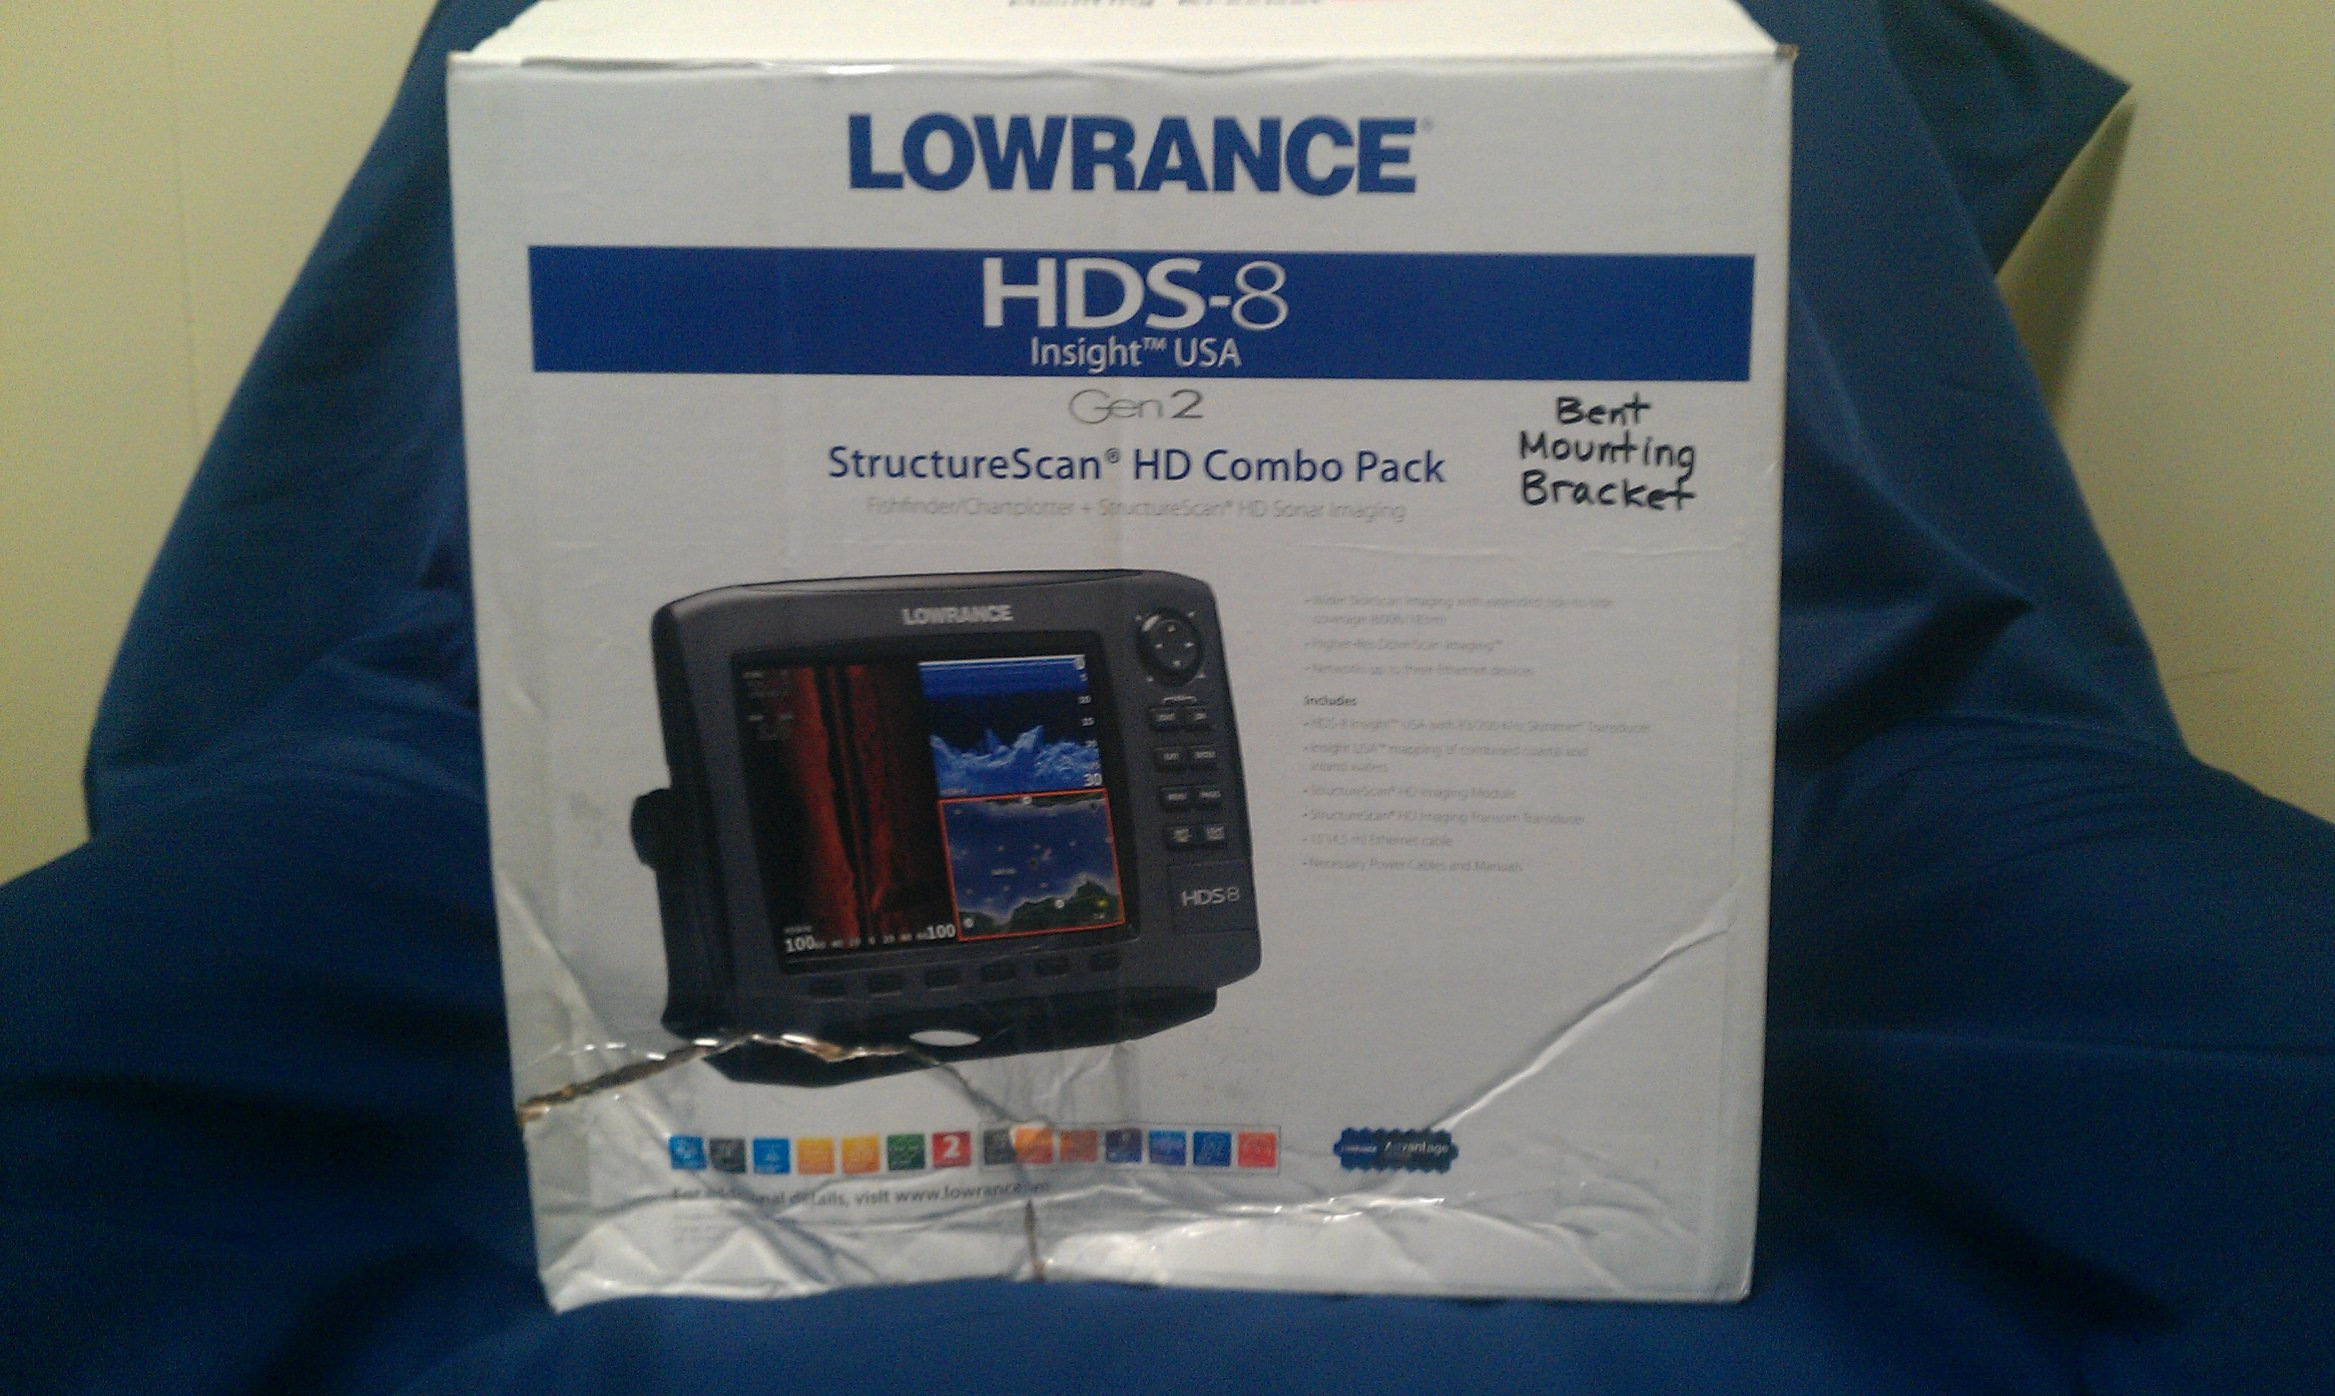 New In Box Lowrance HDS-8 w/ StructureScan (LSS-2) and